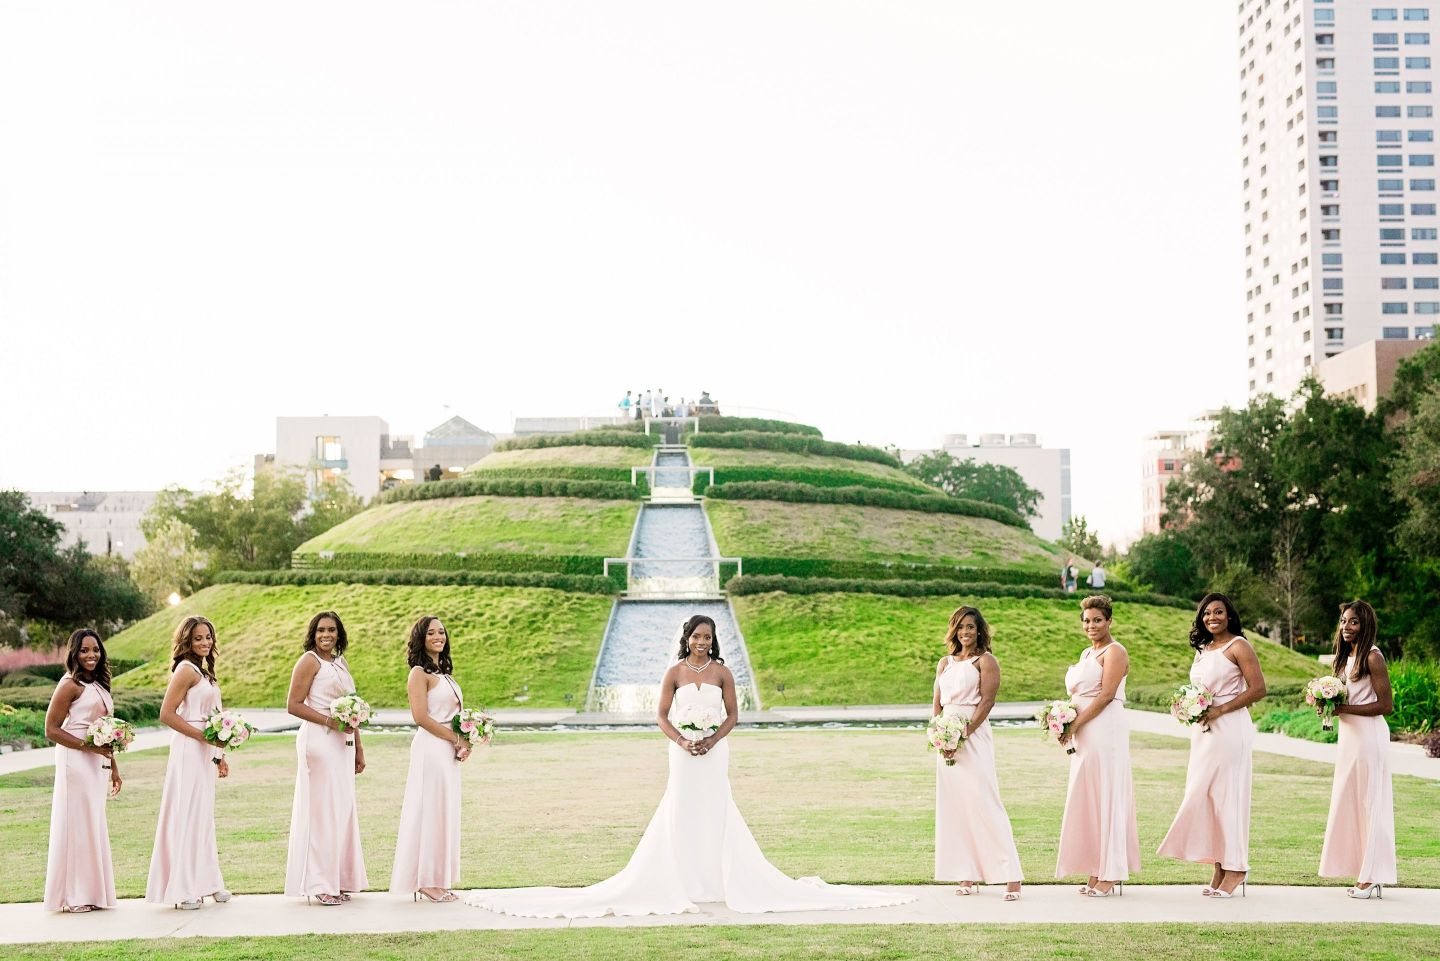 Andre-and-Gina-Pharris-Photography-0064 Houston, TX Wedding at the Buffalo Soldier Museum